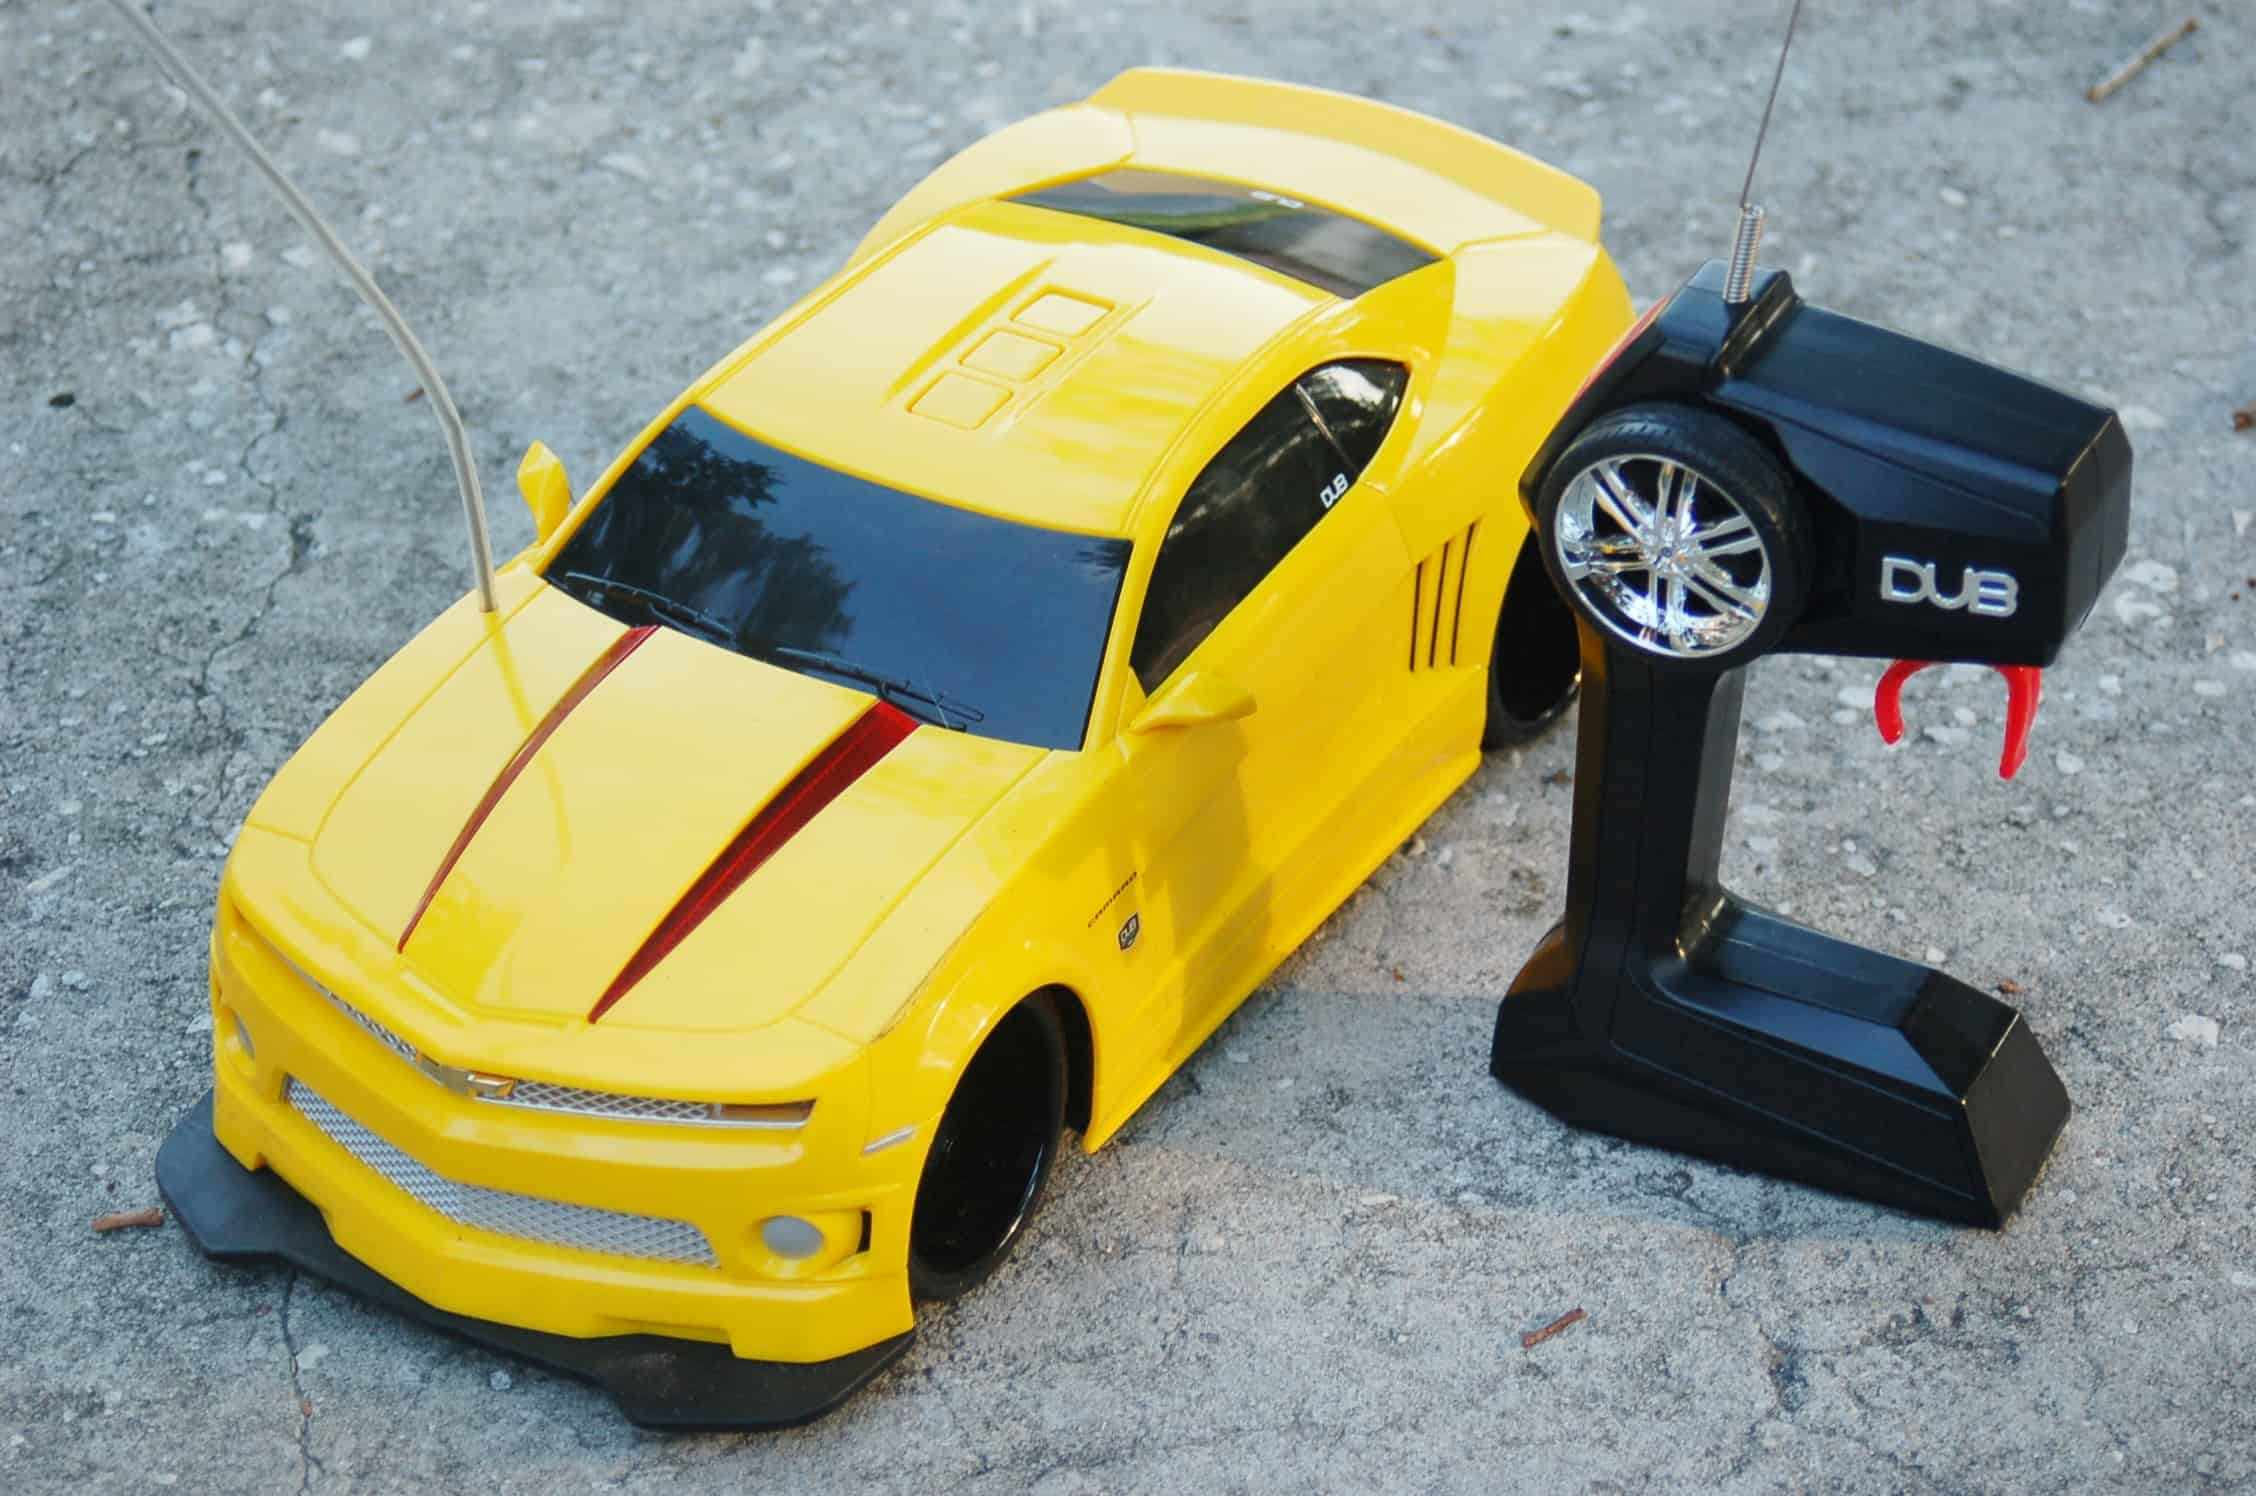 Cool Remote Control Toys This car is really cool it